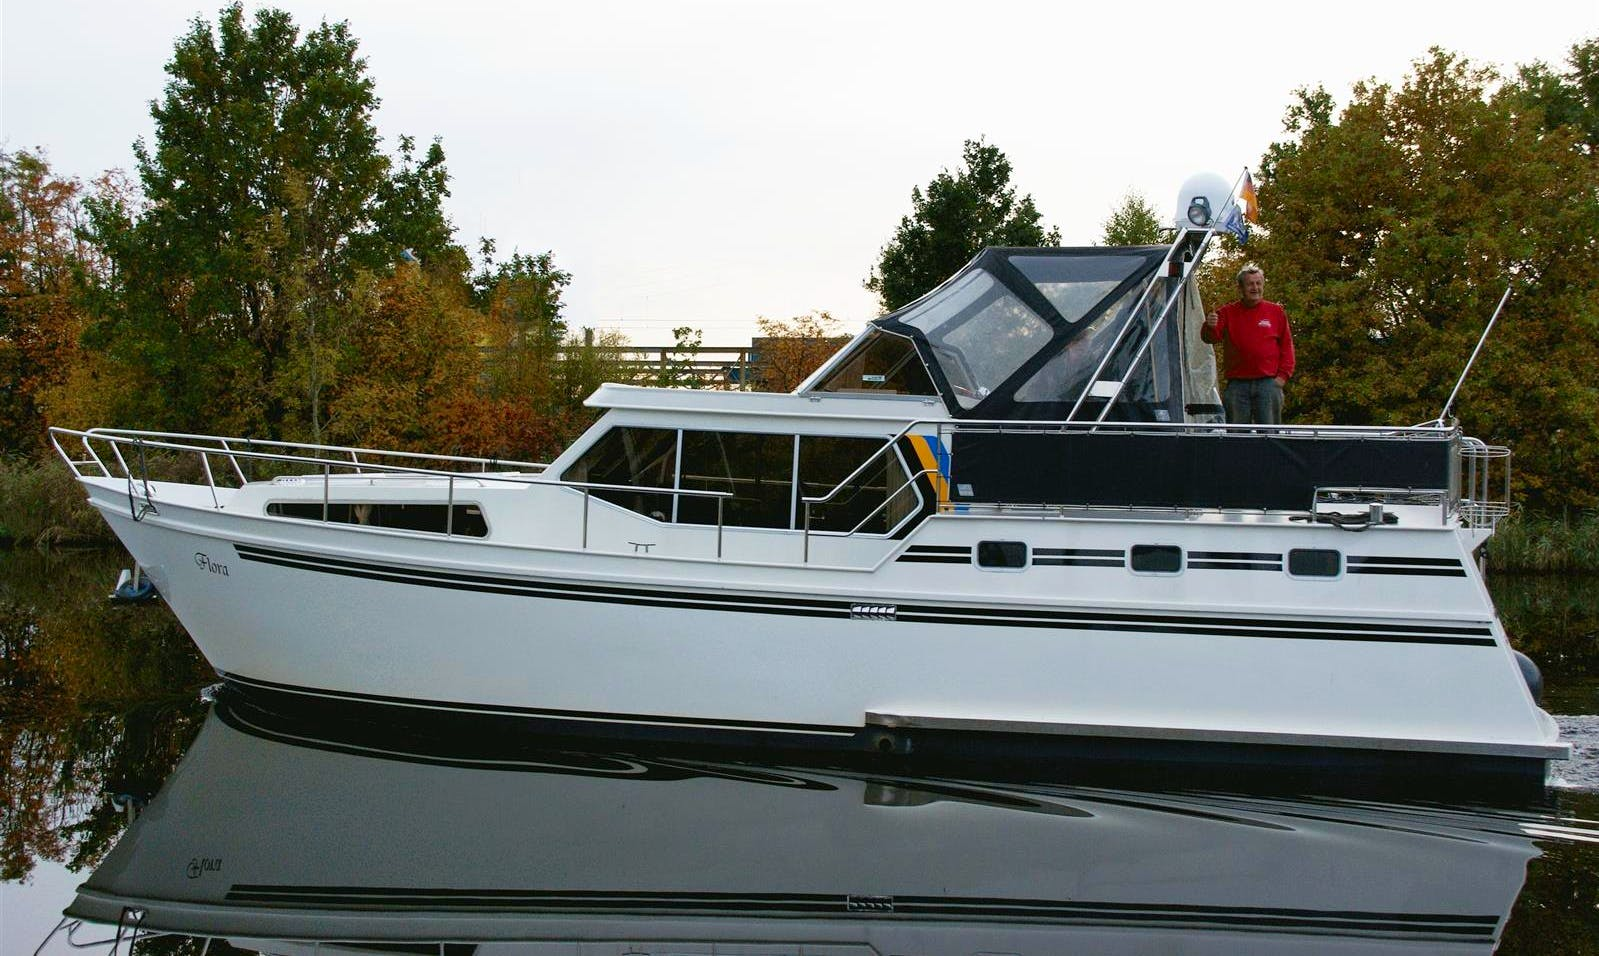 Explore Friesland, Netherlands on 41' Motor Yacht